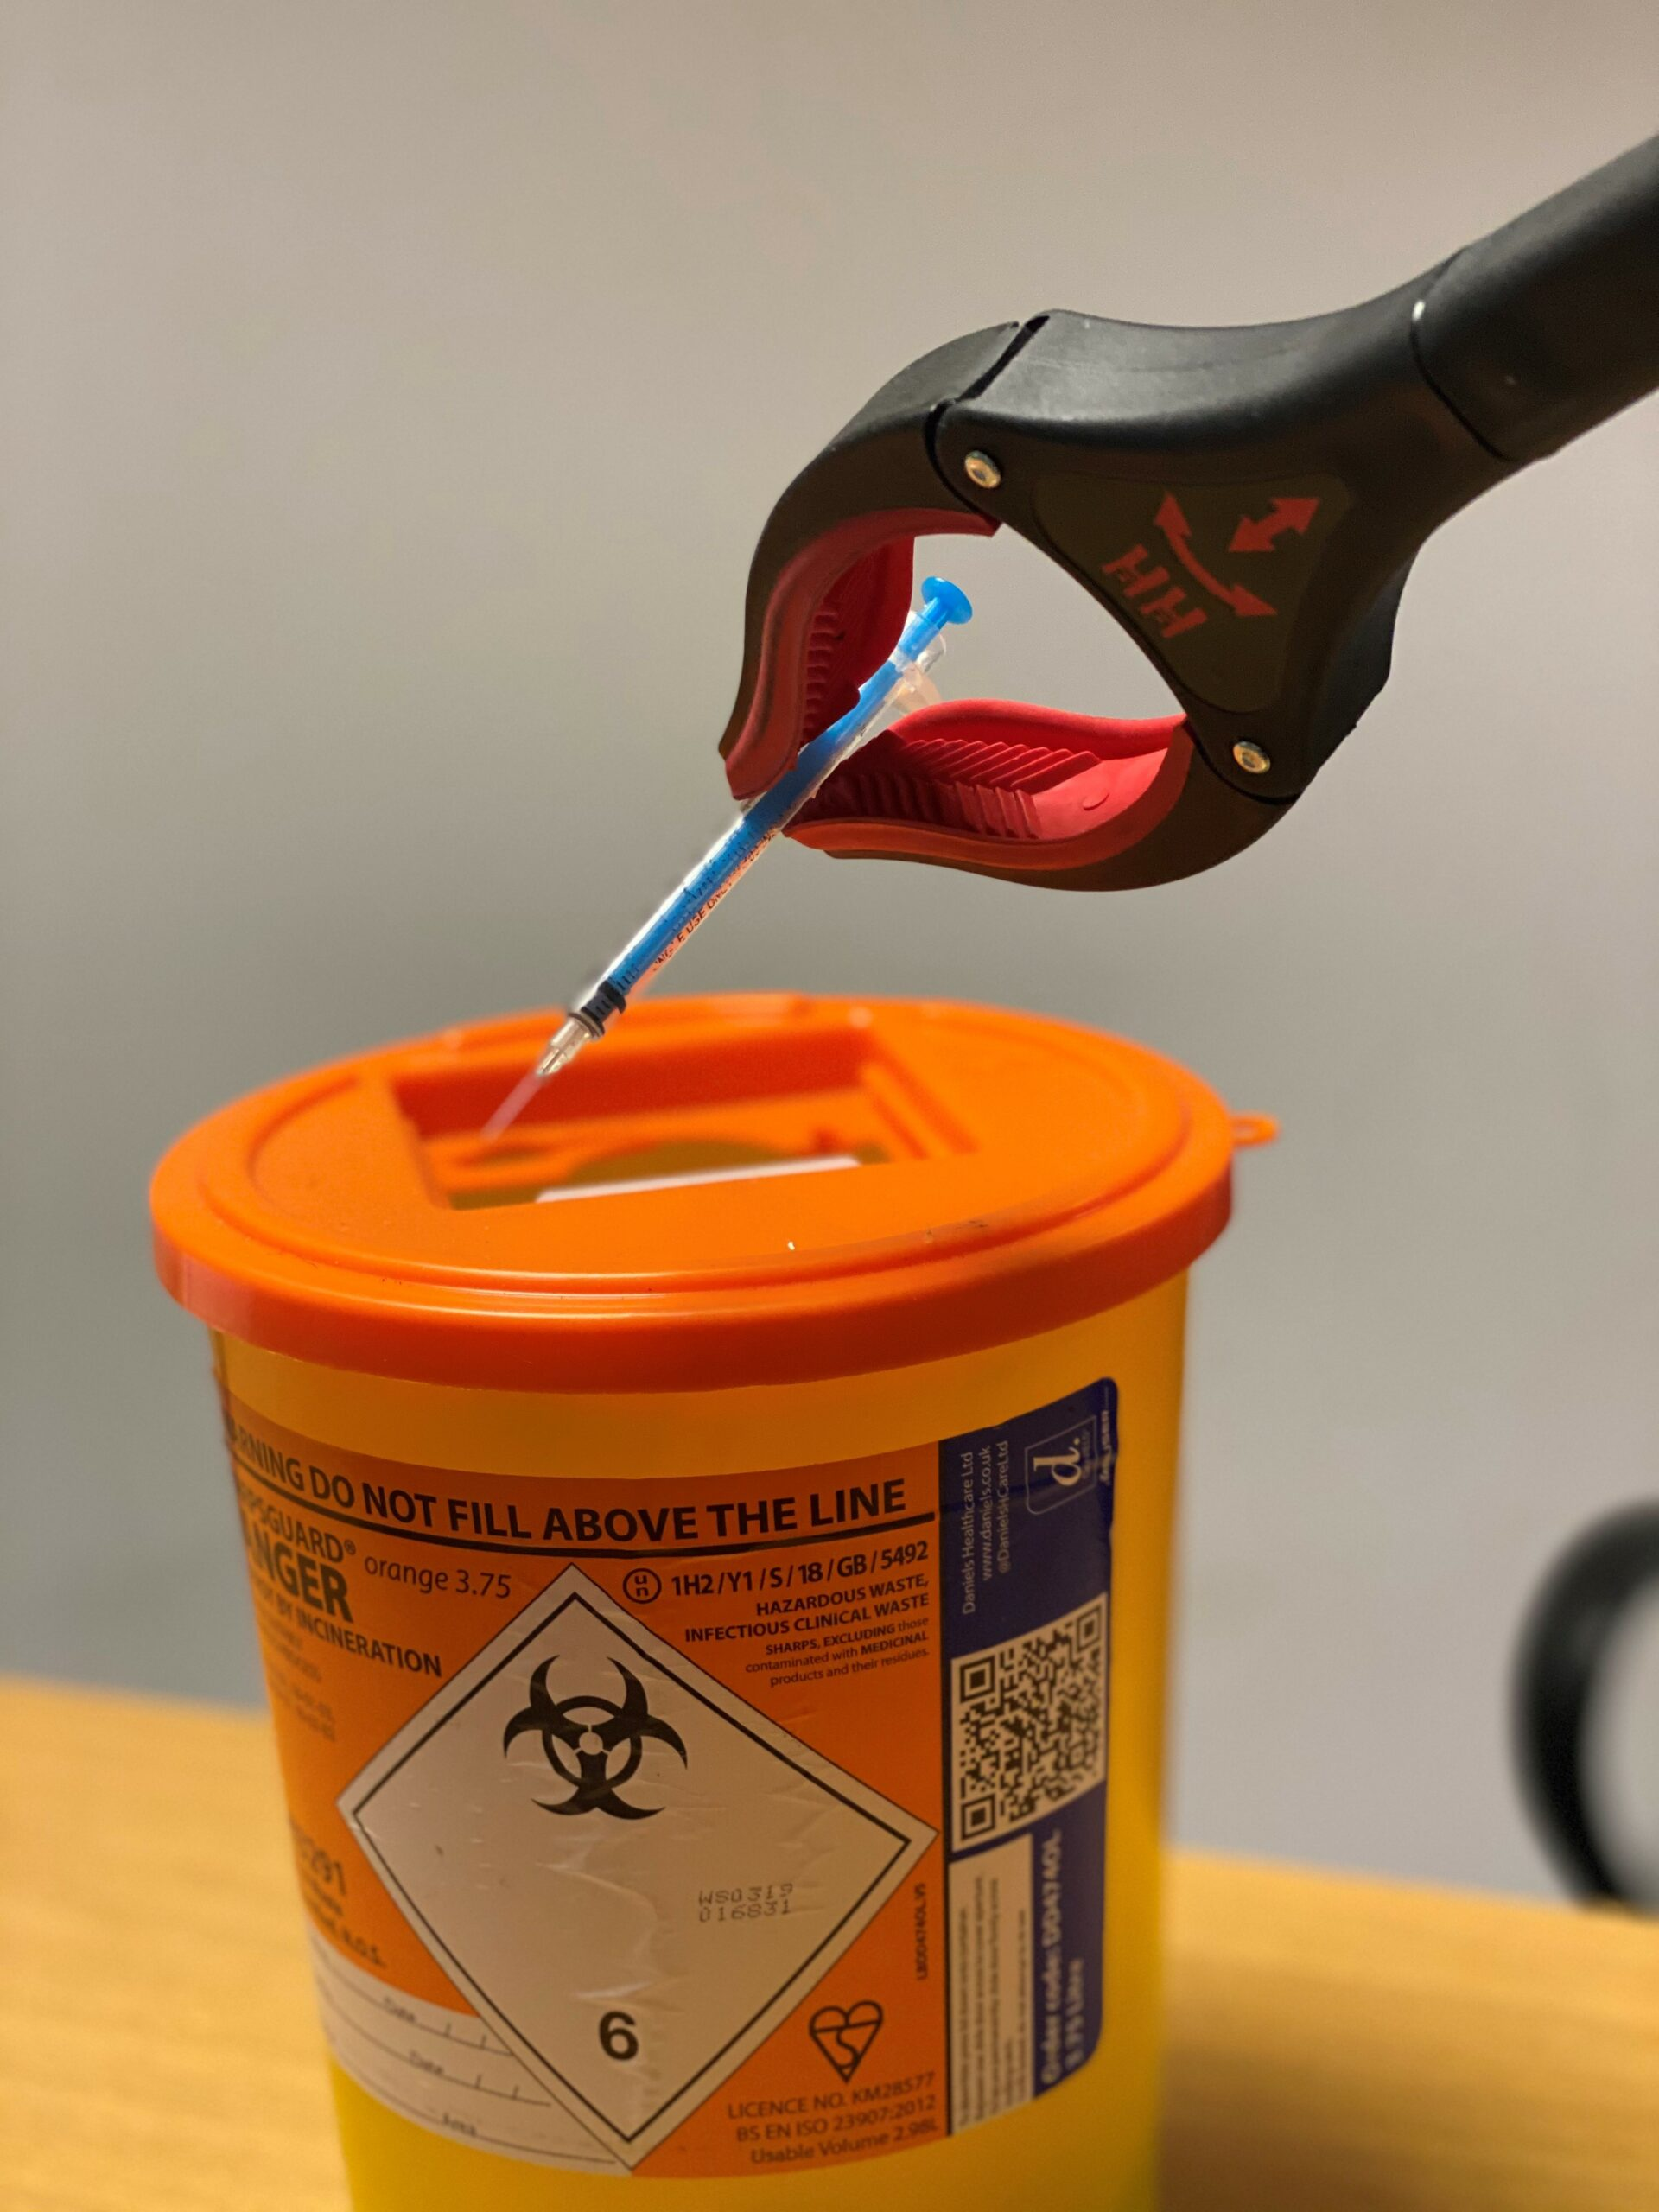 A needle is placed into a sharps container using a needle picker